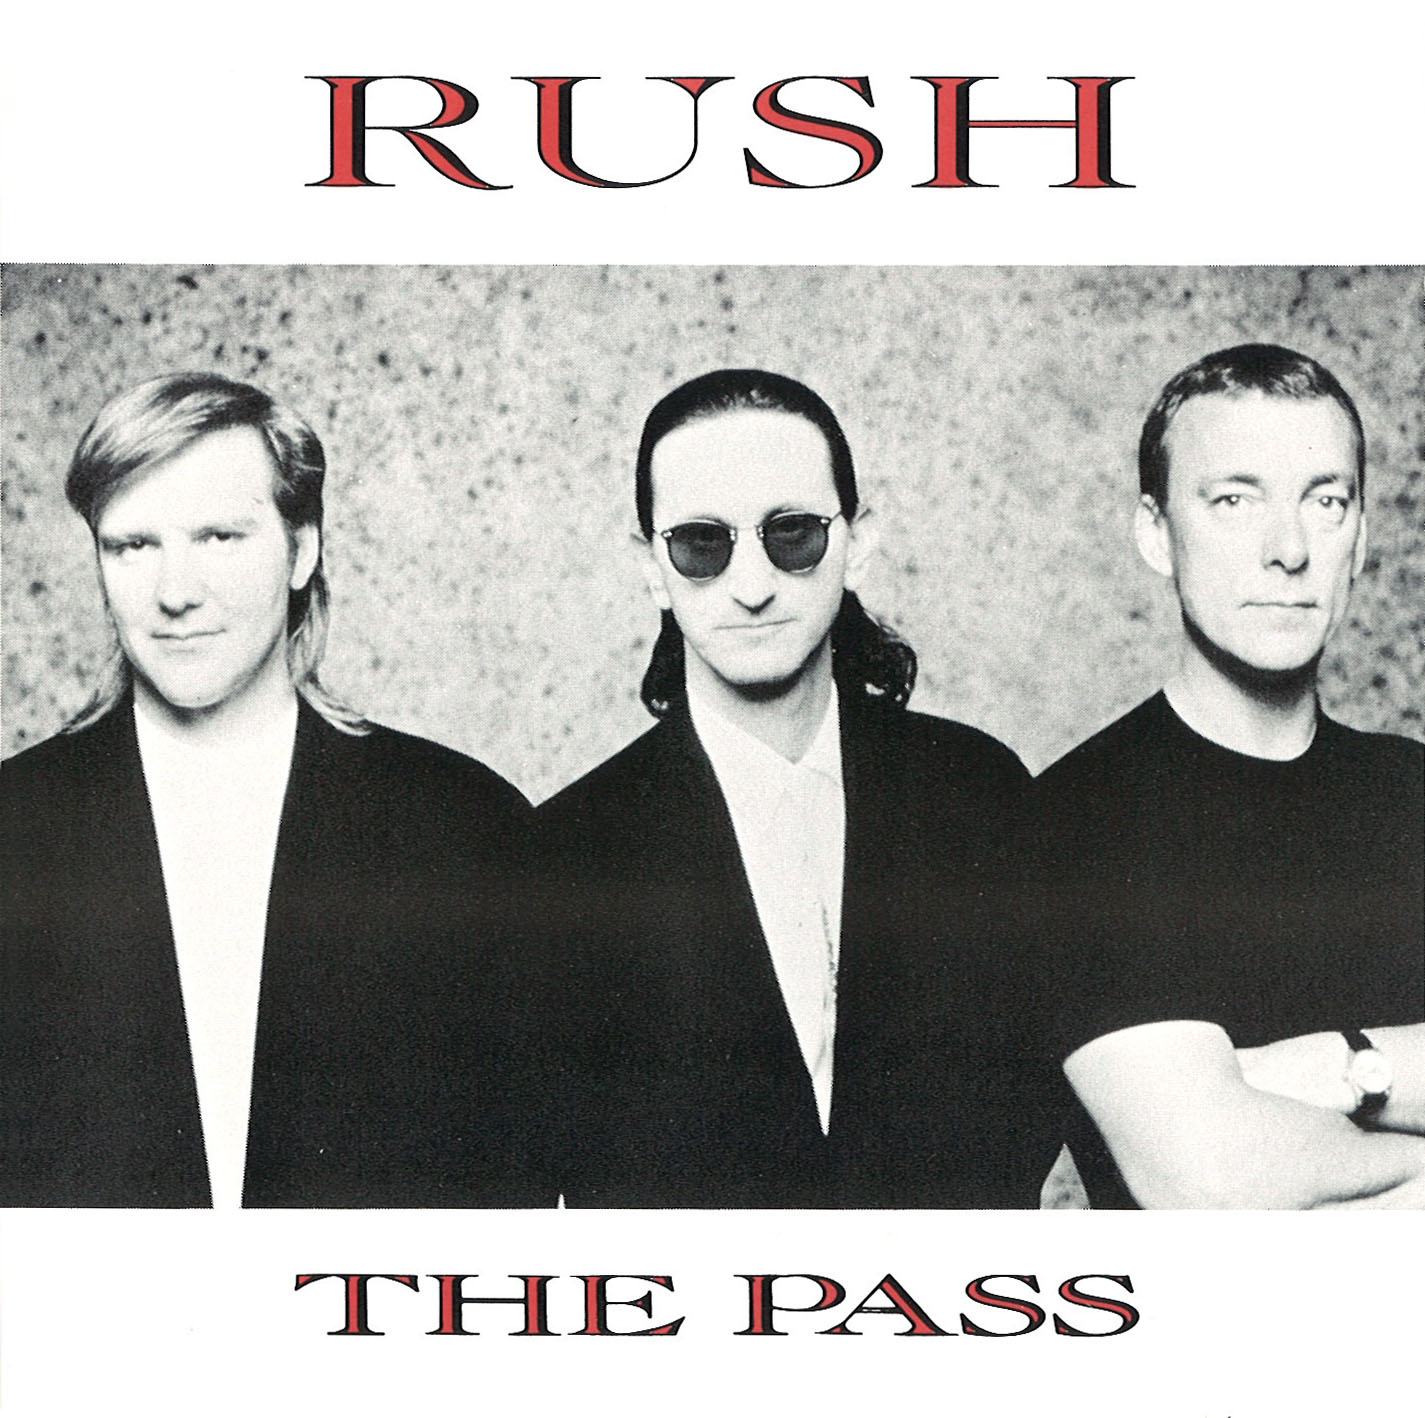 singles in rush Find rush discography, albums and singles on allmusic.